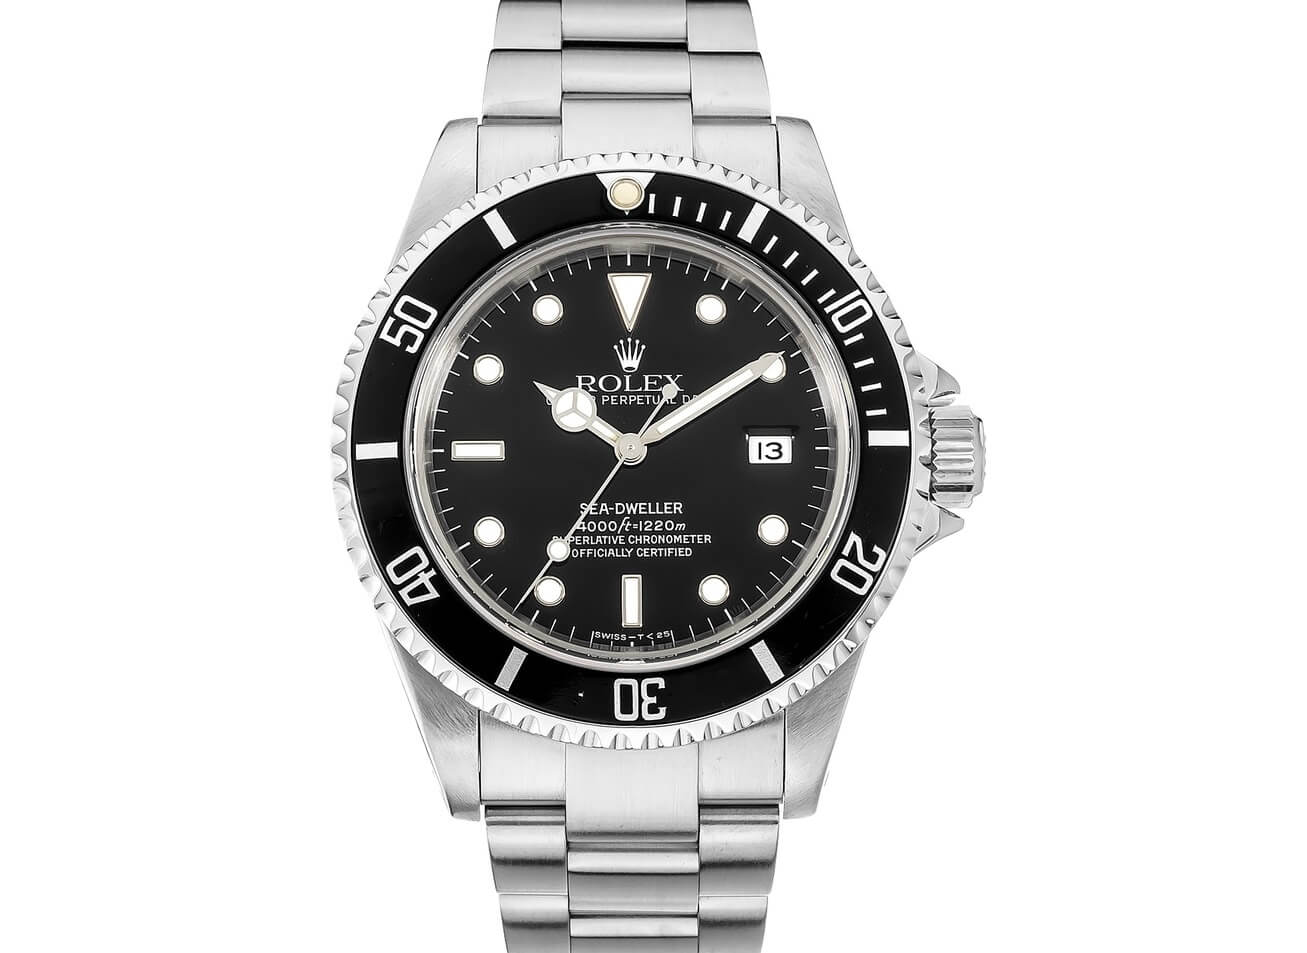 Rolex Sea-Dweller 16600 replica